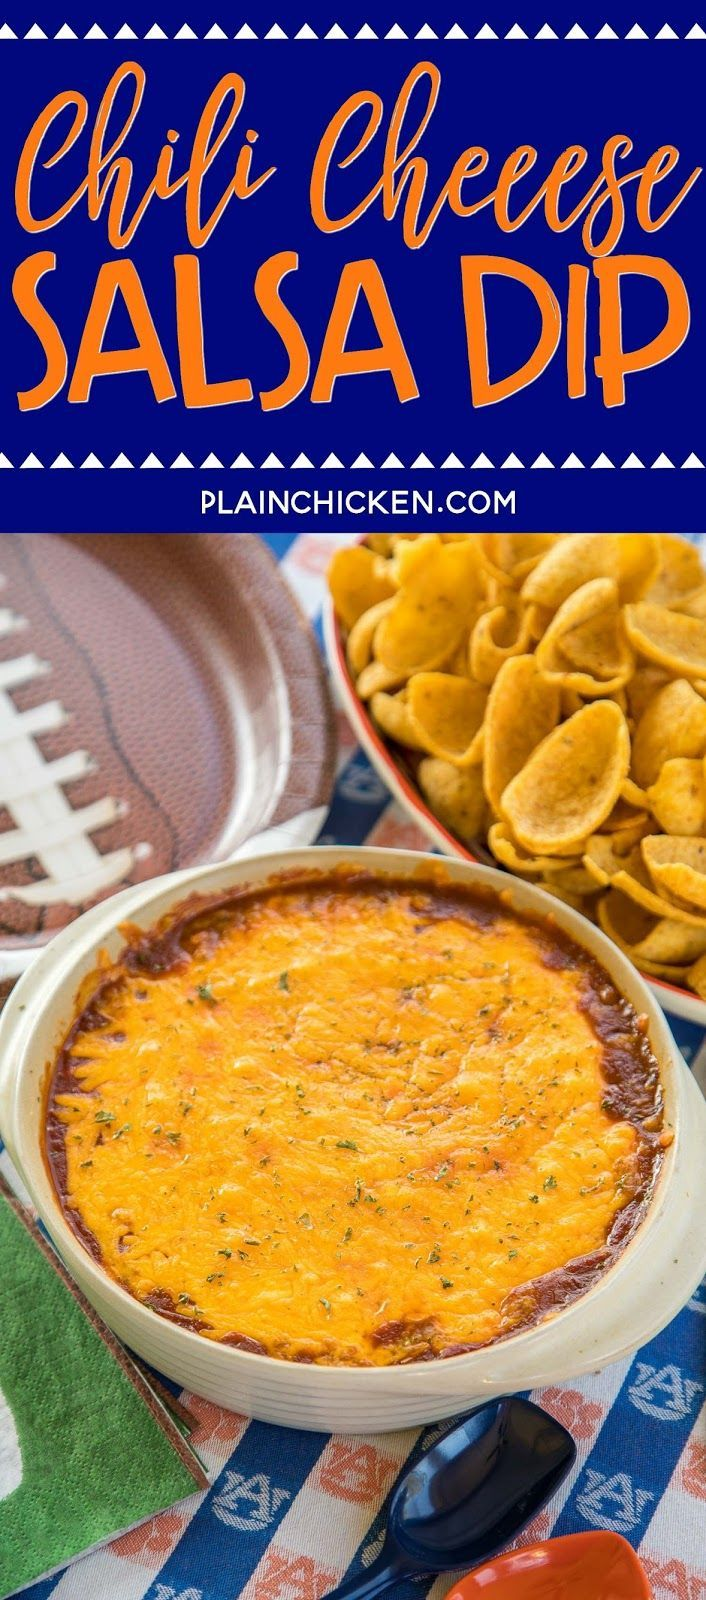 Cheese Salsa Dip recipe - took this to a party and it was the first thing to go!! Everybody asked for the recipe. They couldn't believe how easy this was to make!!! Chili, Cream Cheese, Salsa and Cheddar Cheese. Serve the dip with fritos, tortilla chips, celery stick or bell pepper strips. Tastes great hot out of the oven or cooled to...